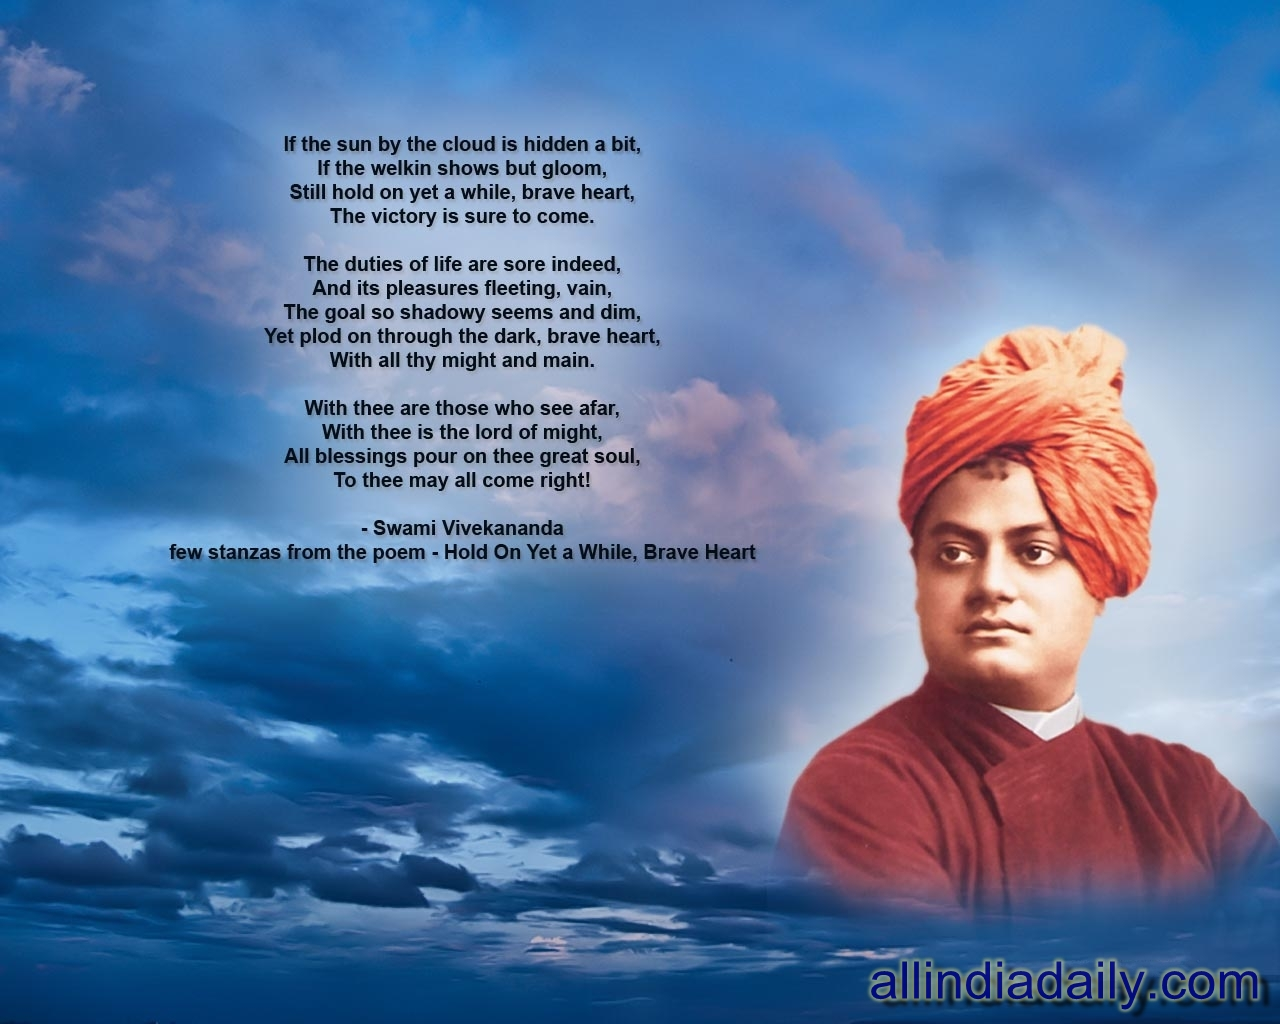 Swami Vivekananda Quotes In Marathi. QuotesGram